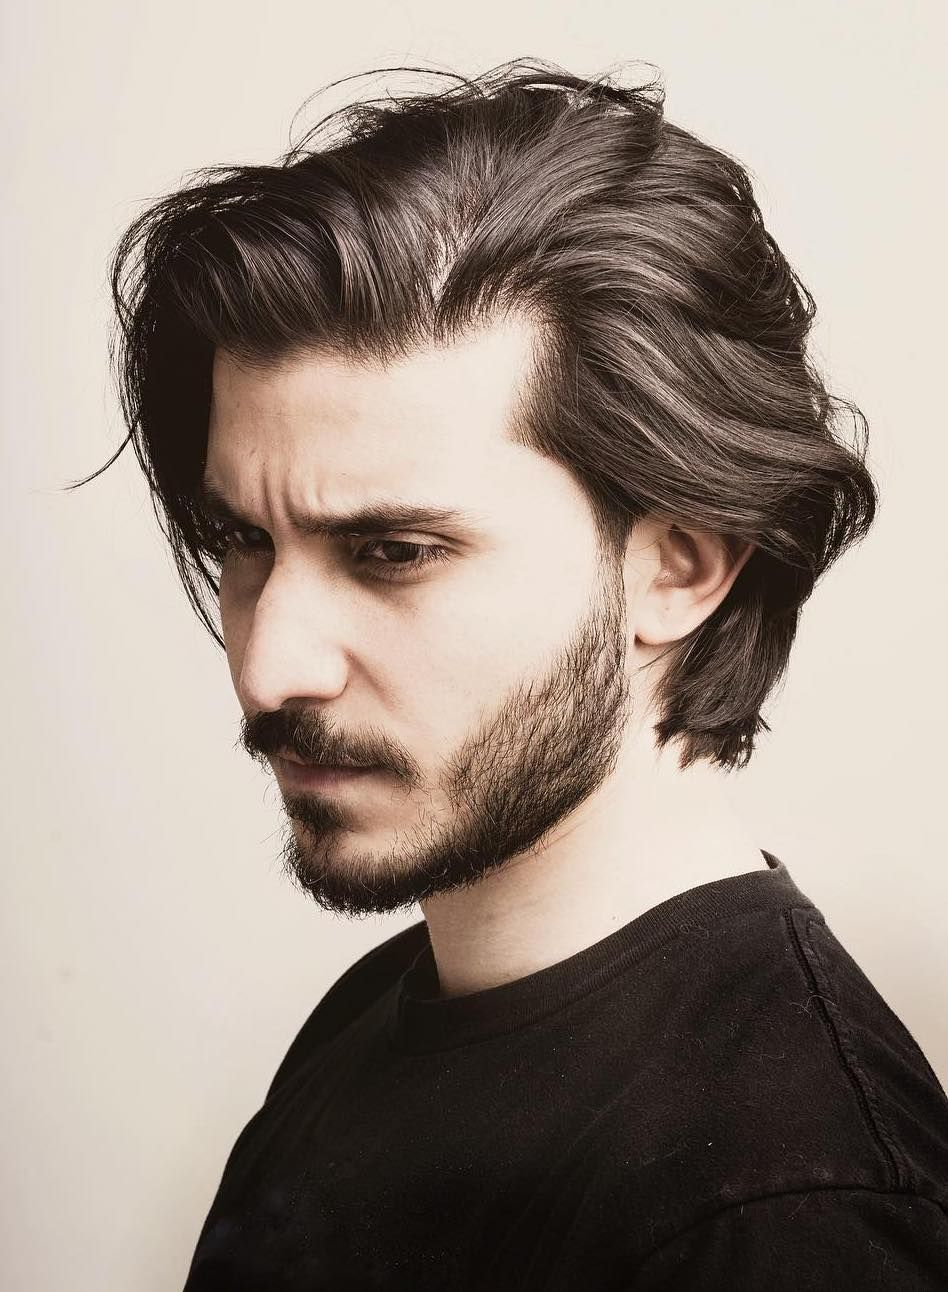 Handsome And Cool The Latest Men S Hairstyles For 2019 Long Hair Styles Men Latest Men Hairstyles Chin Length Hair